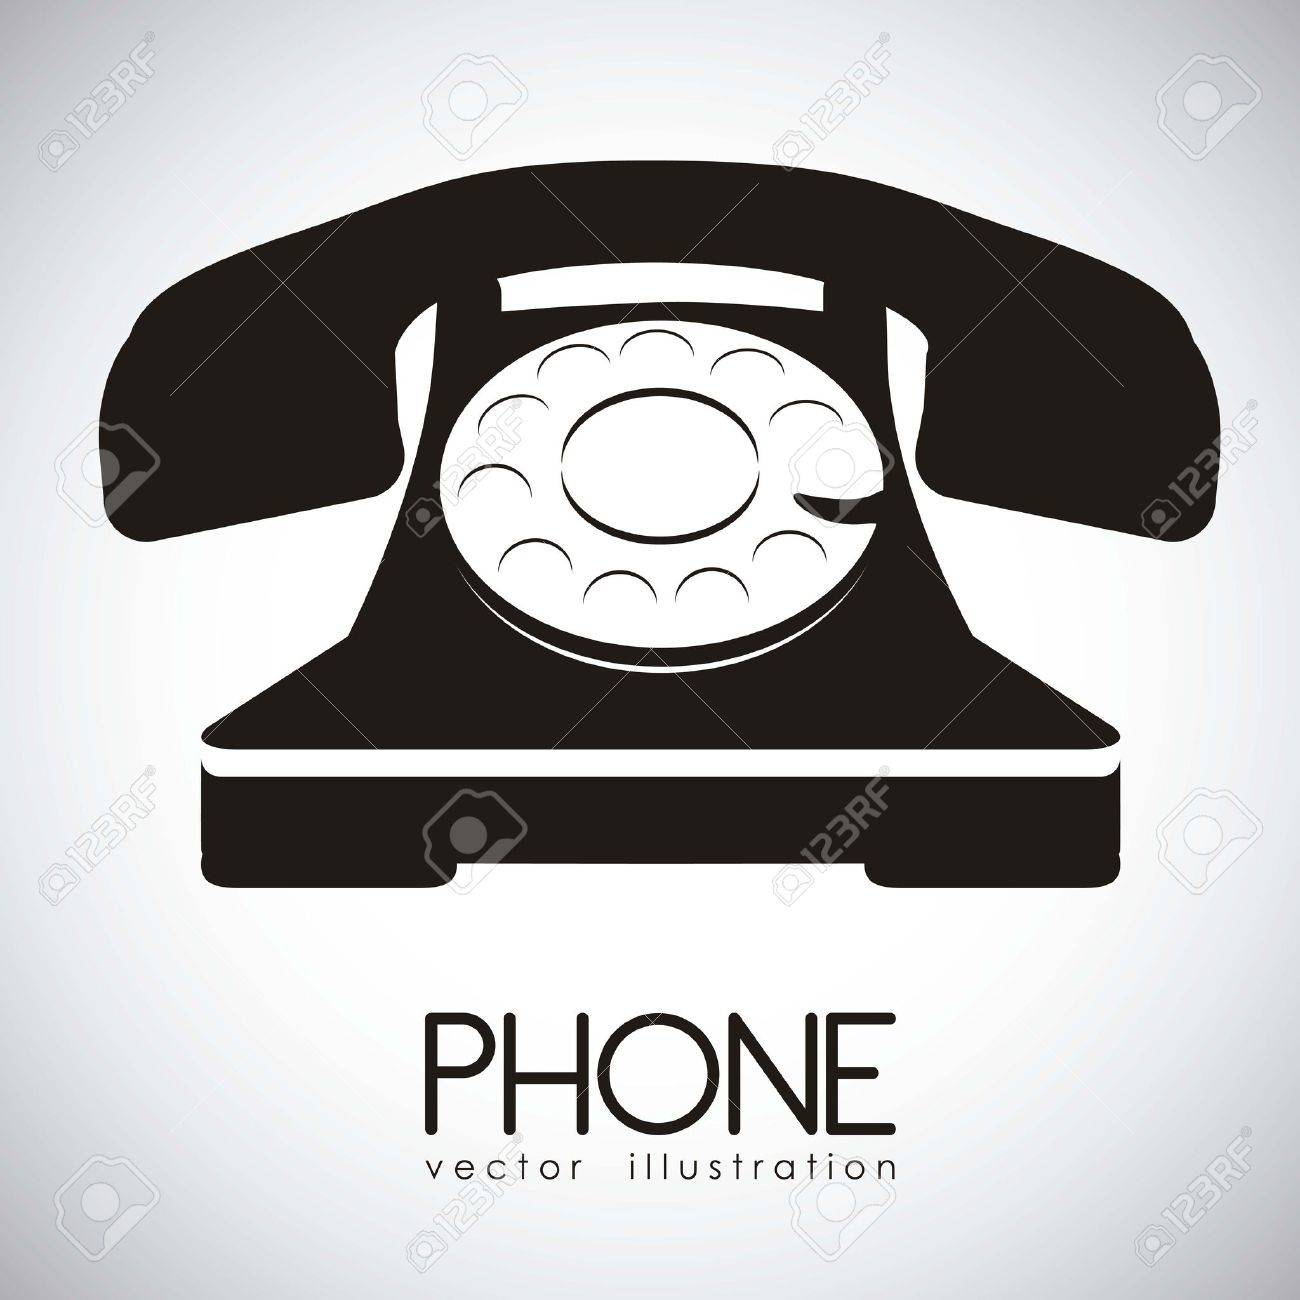 illustration of a rotary phone, black color, vector illustration Stock Vector - 14945998